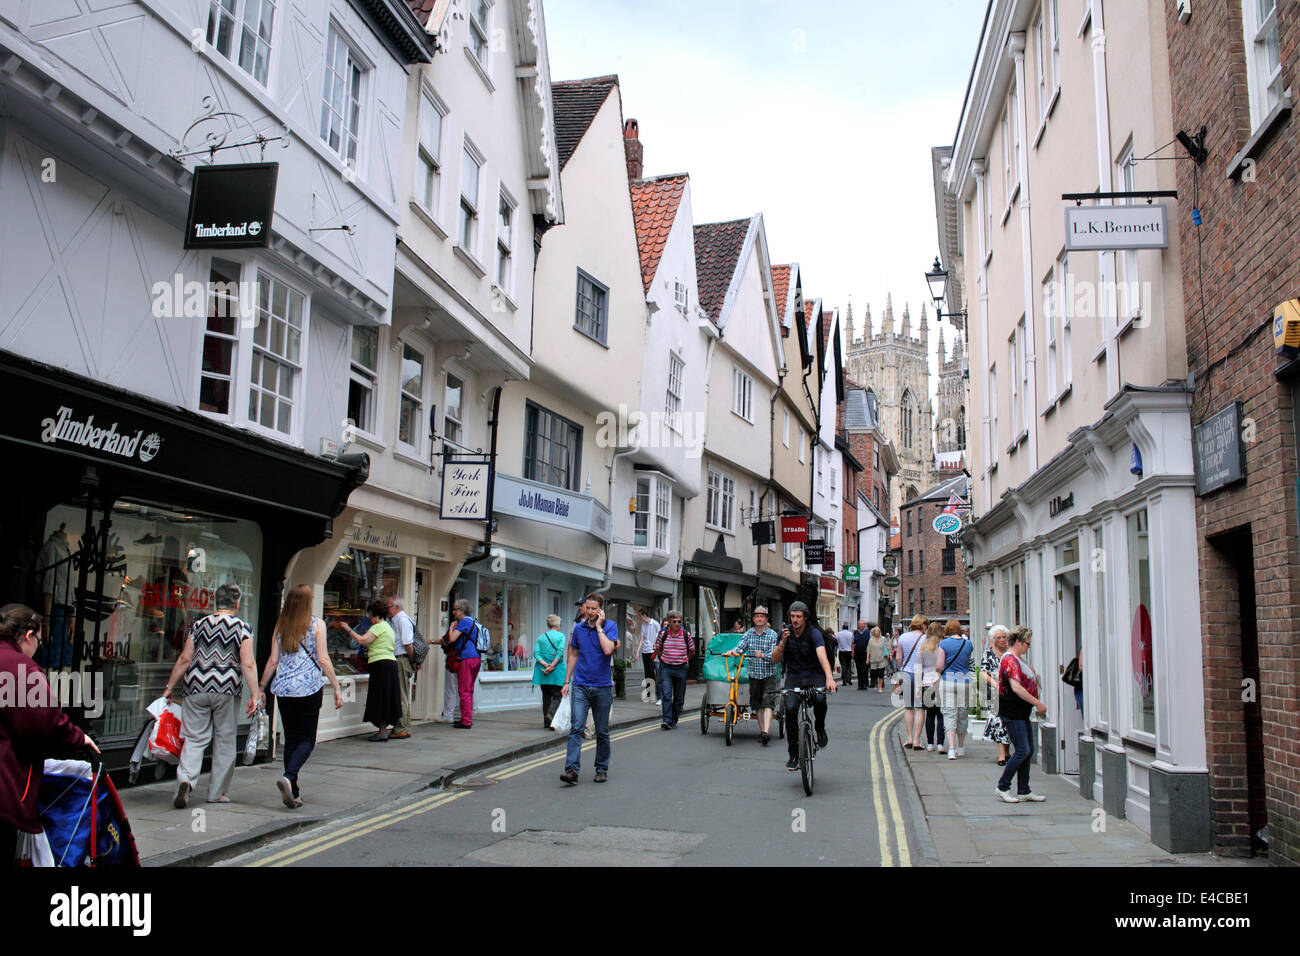 Low Petergate, York city centre. York Minister in background. - Stock Image